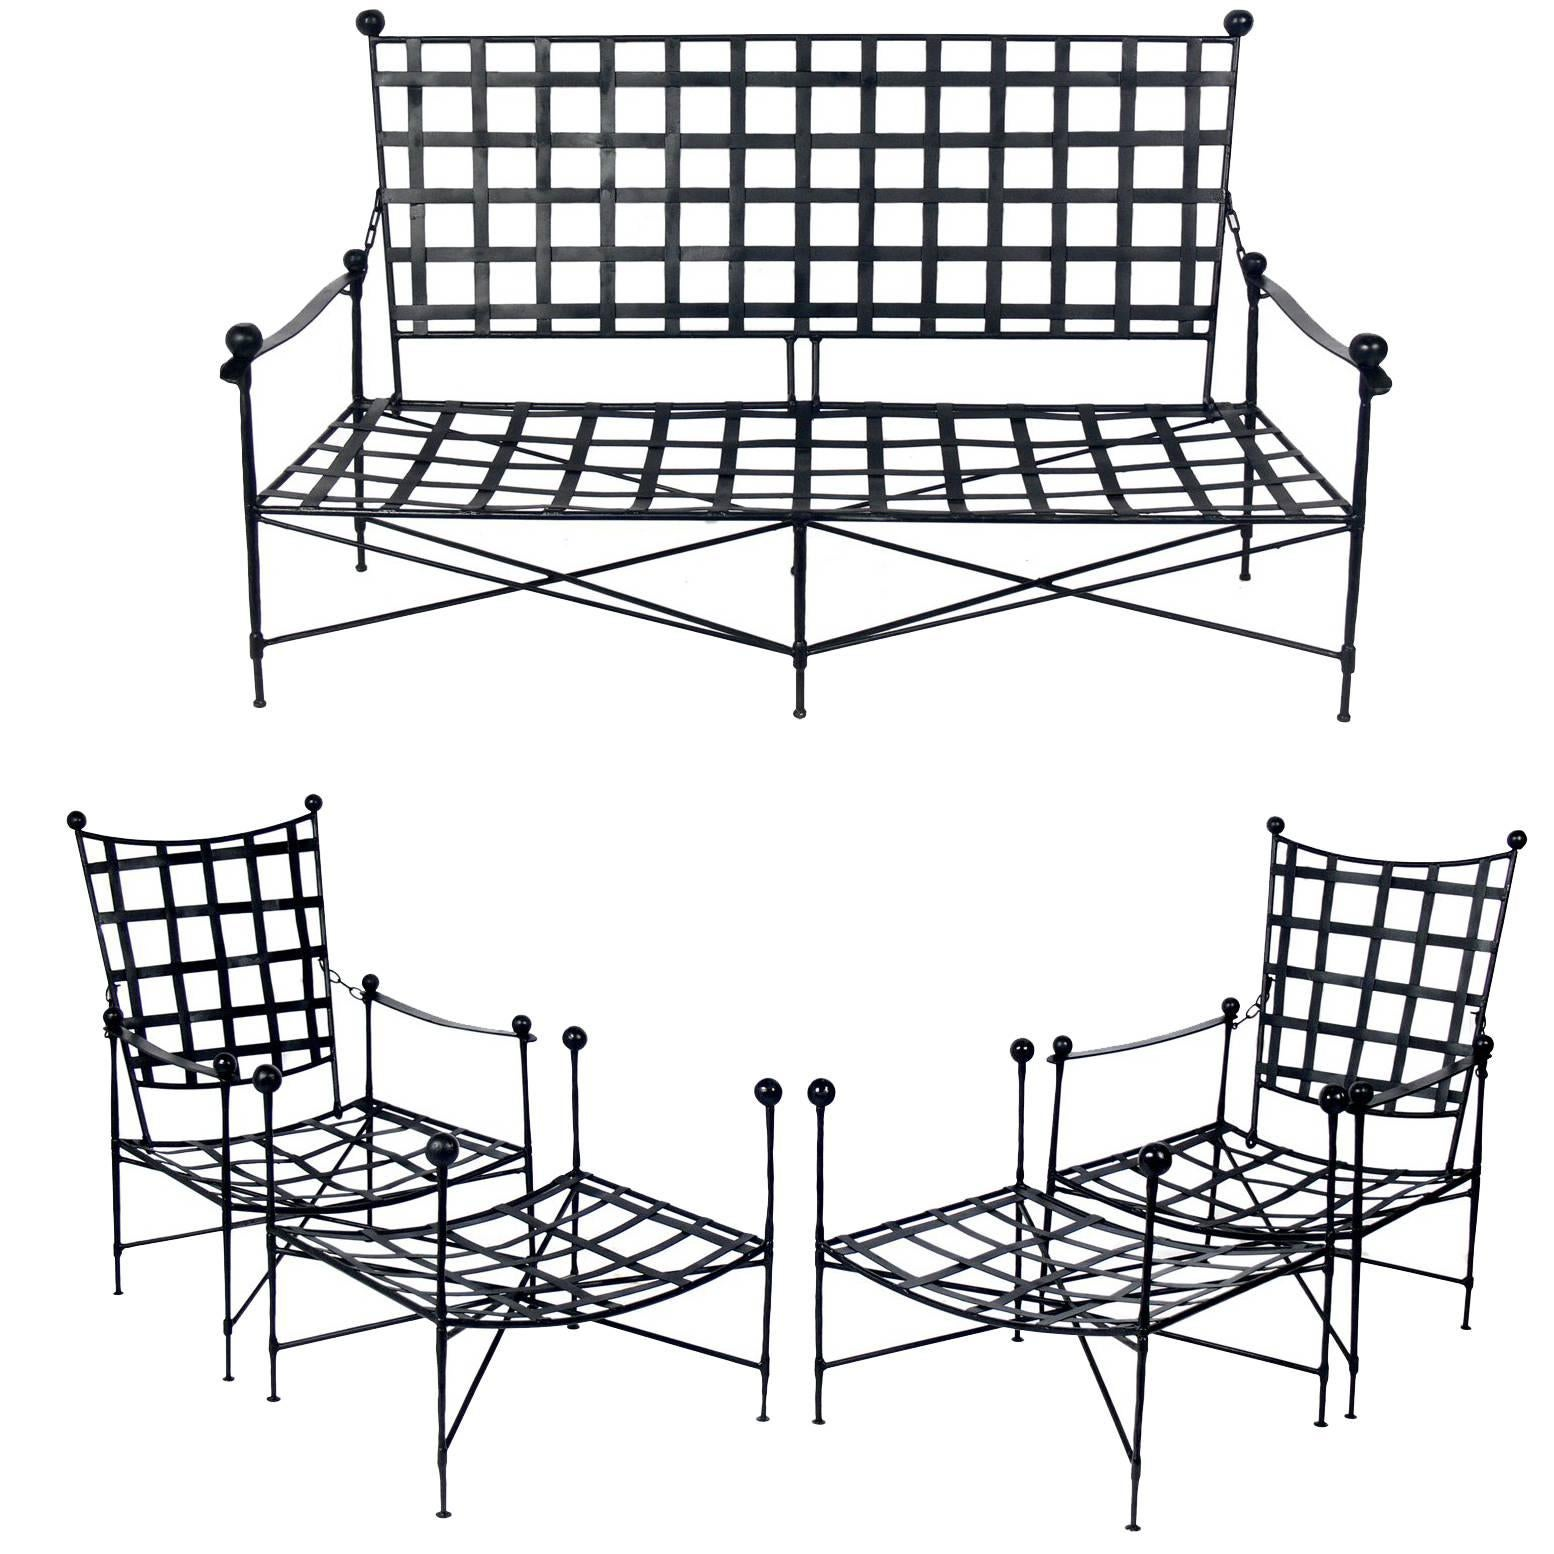 Sculptural Iron Patio Set Designed By Mario Papperzini For Salterini